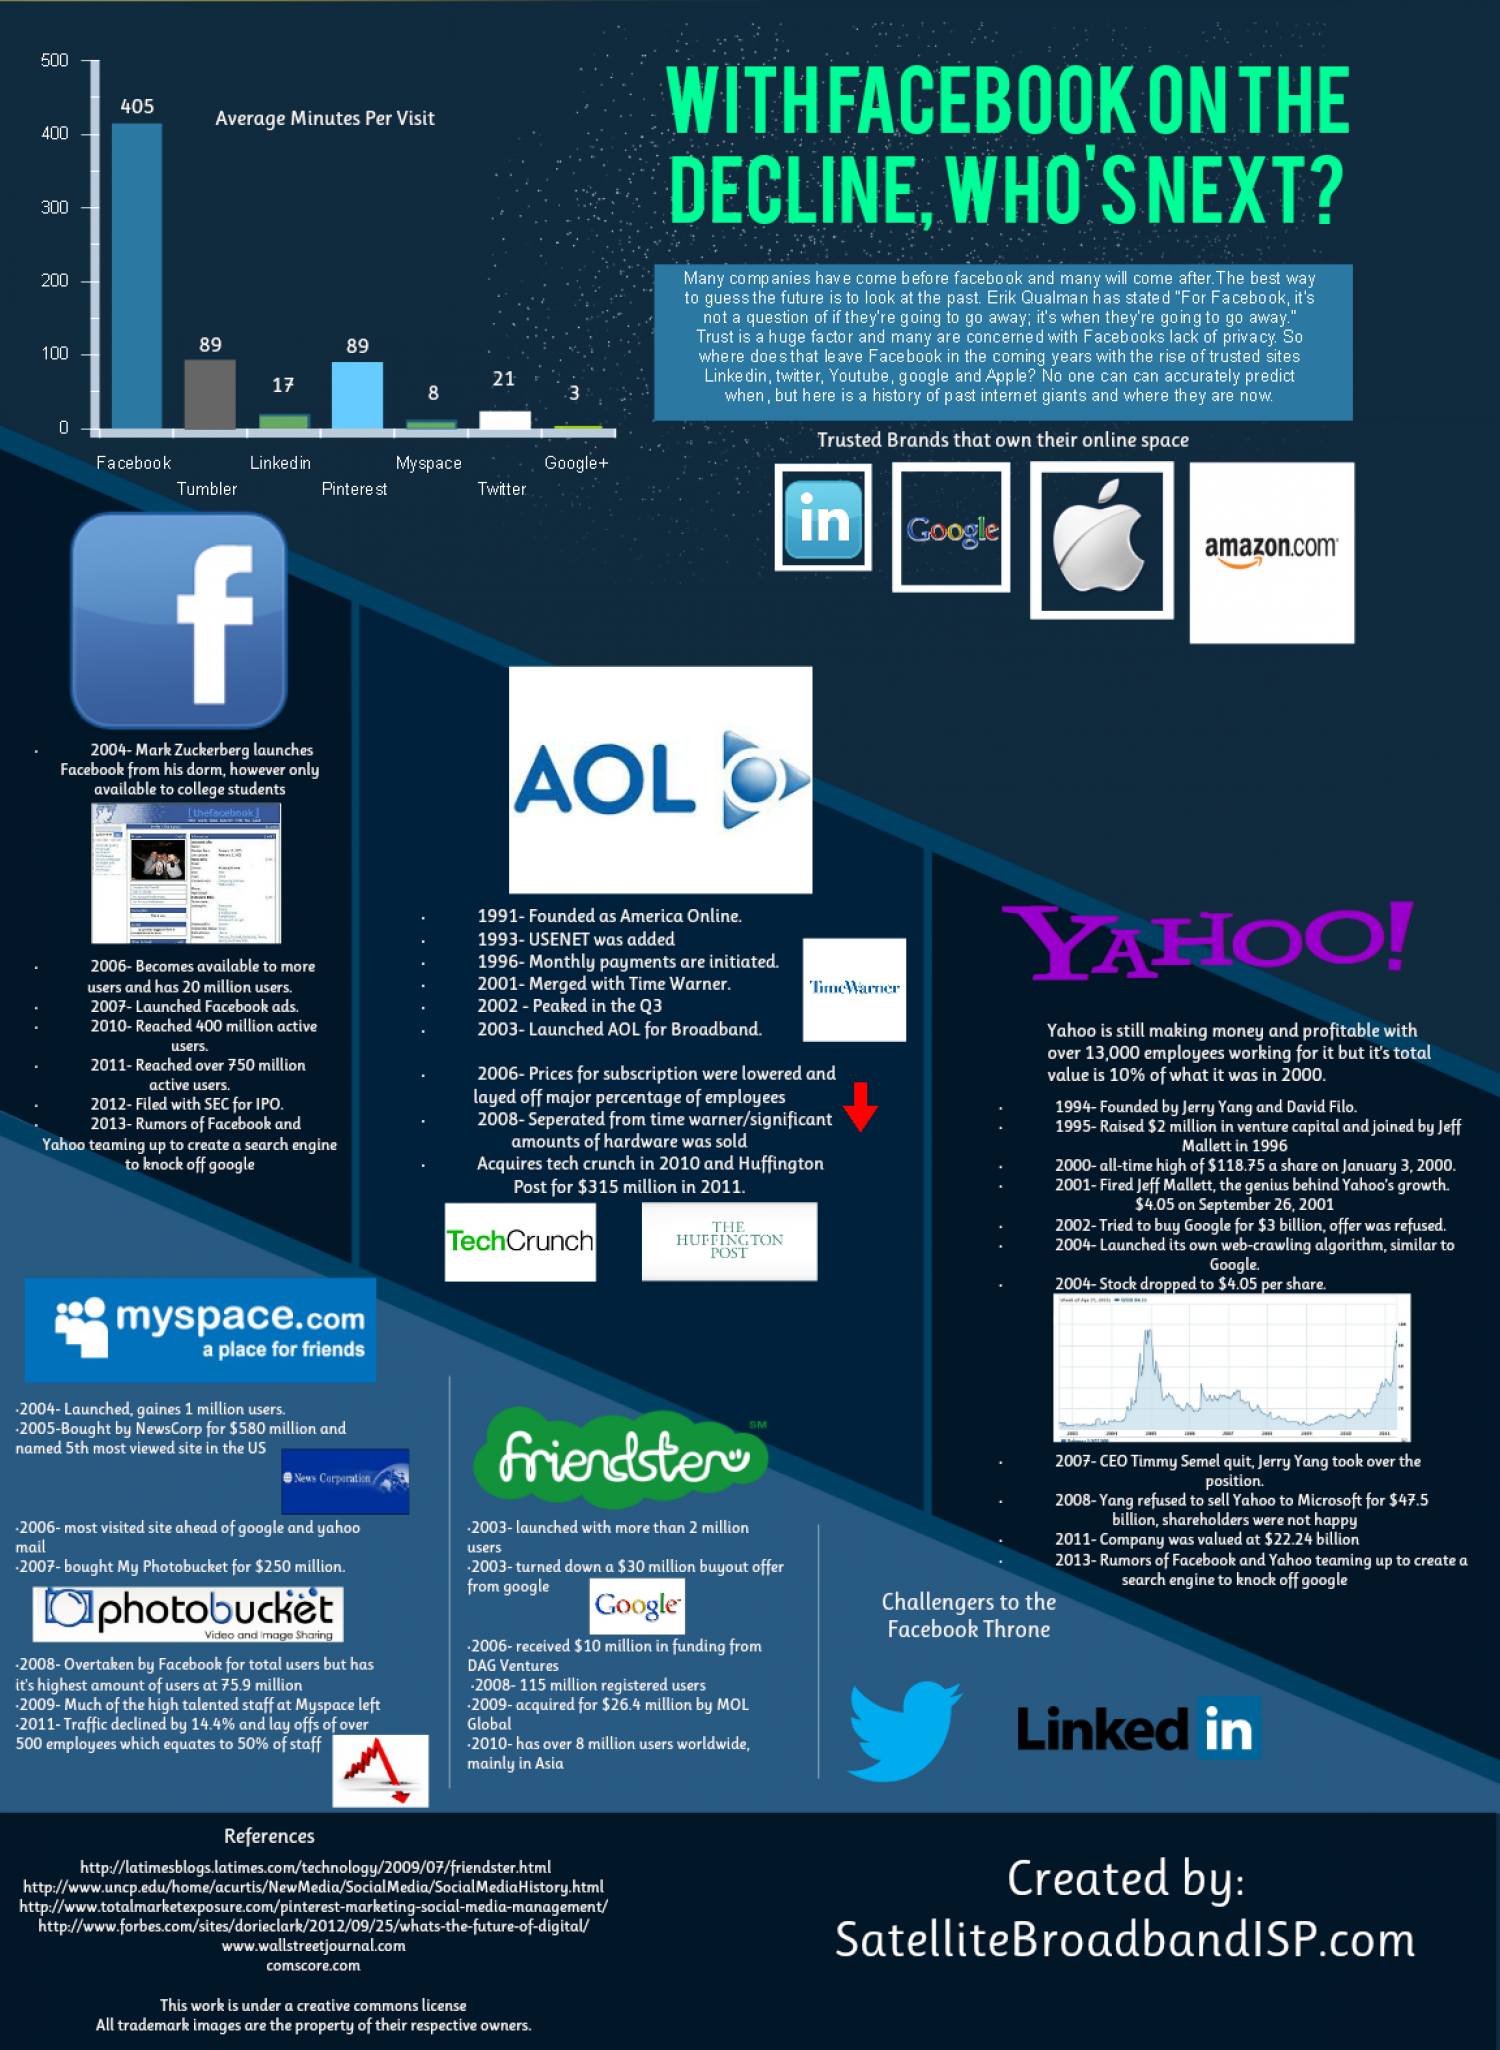 What's next for facebook? Infographic